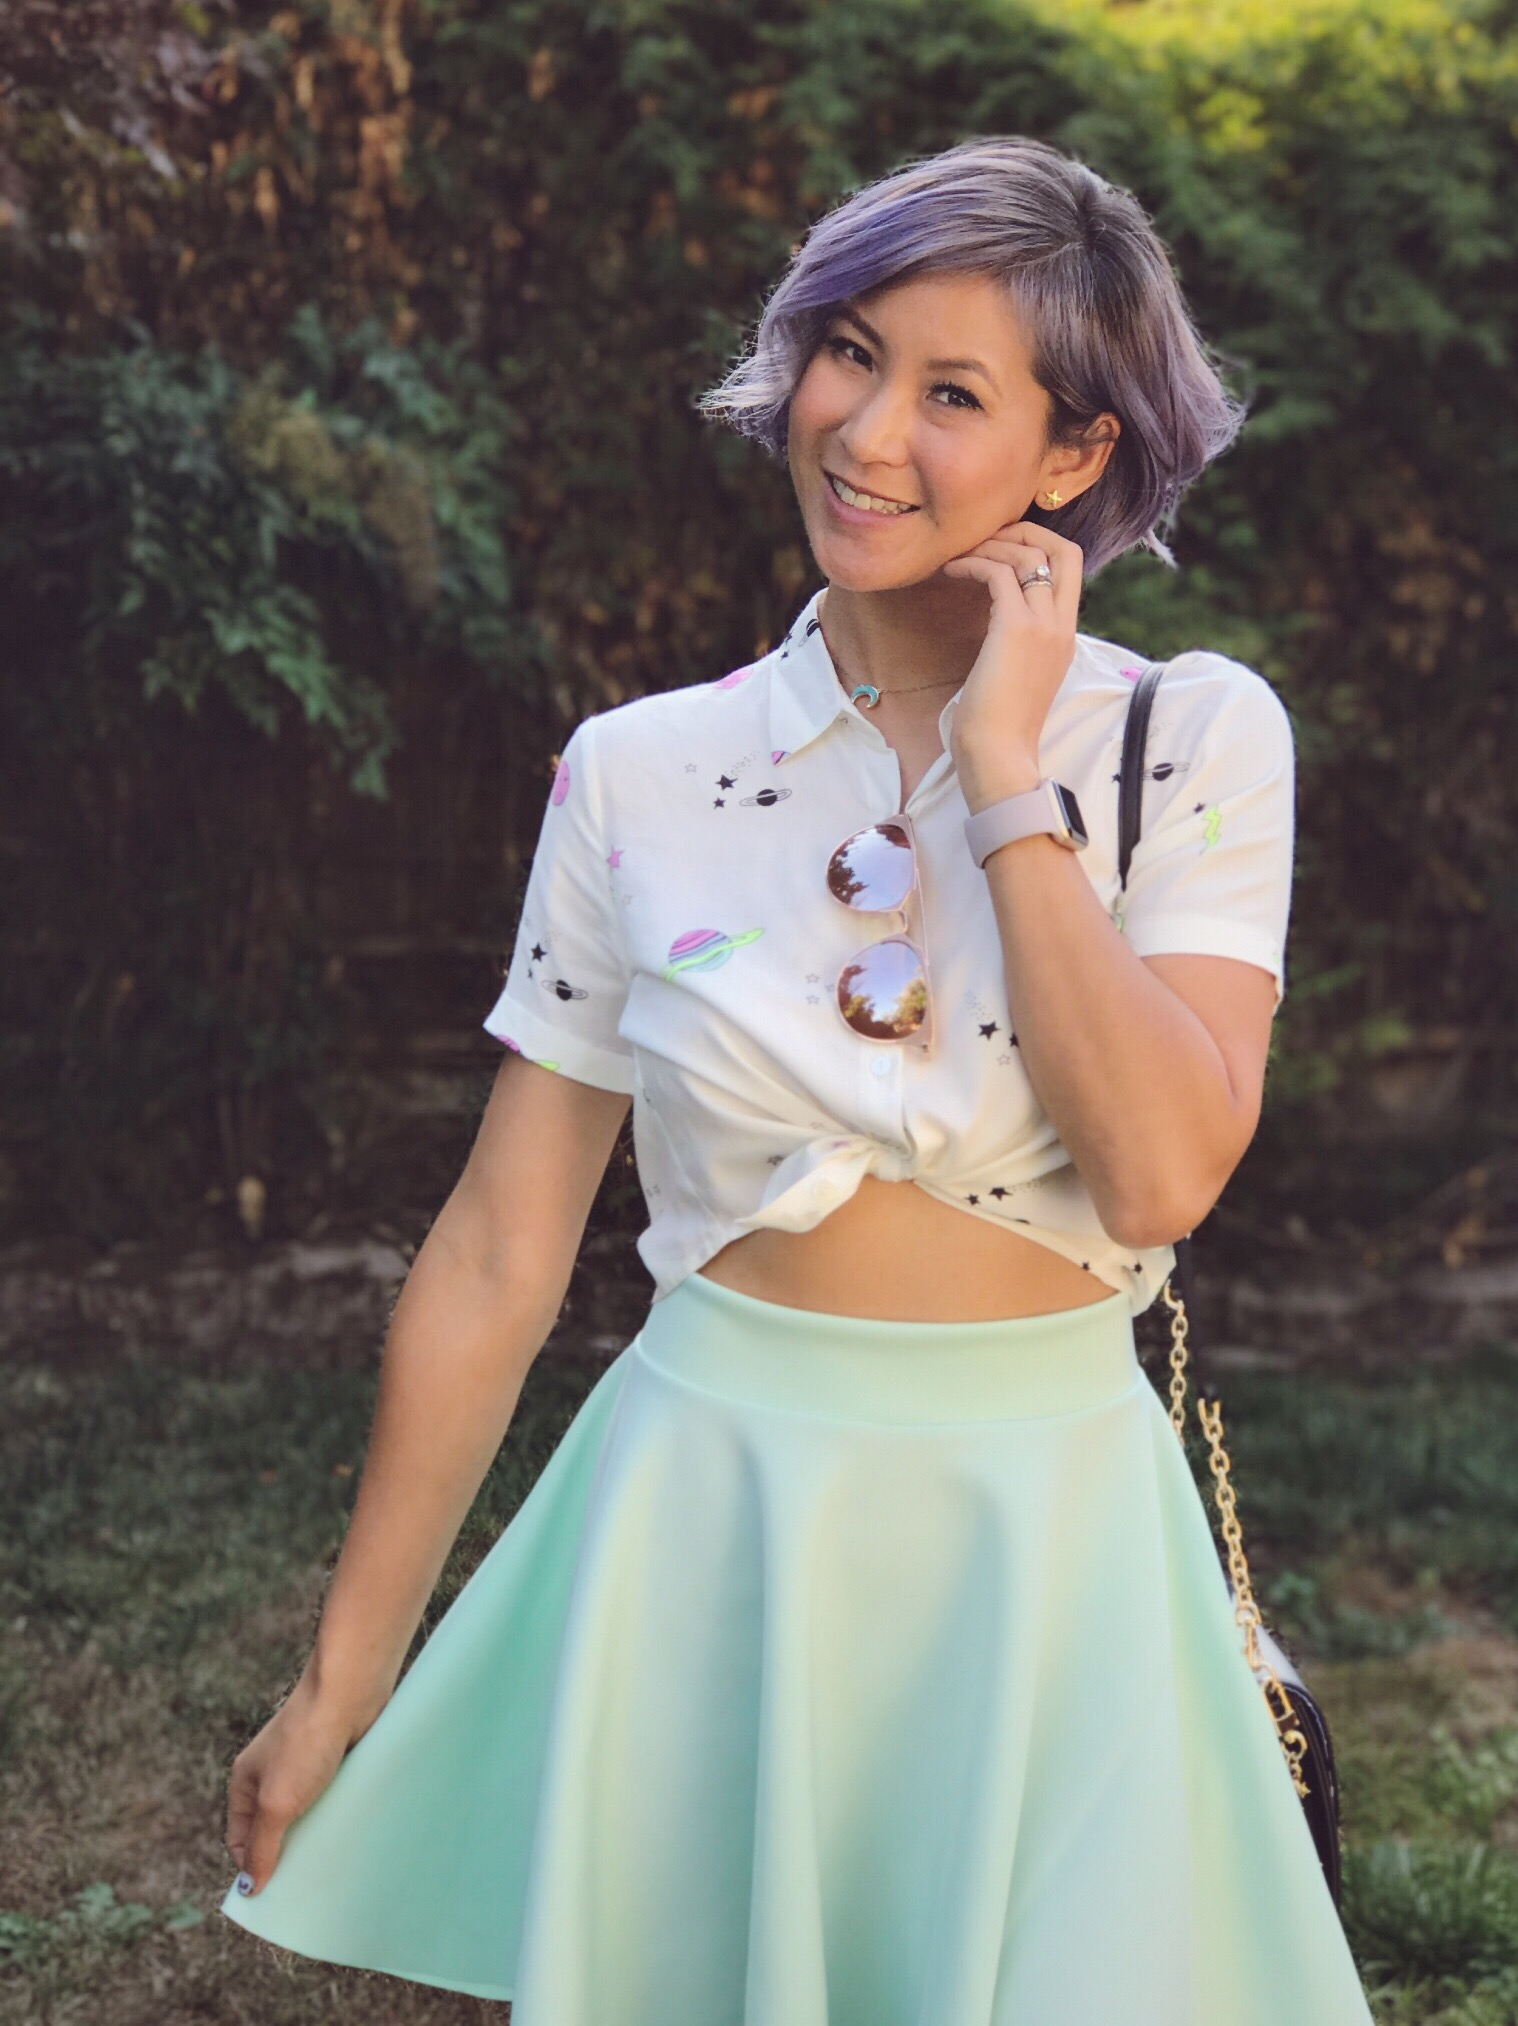 Galaxy print shirt and mint green skirt